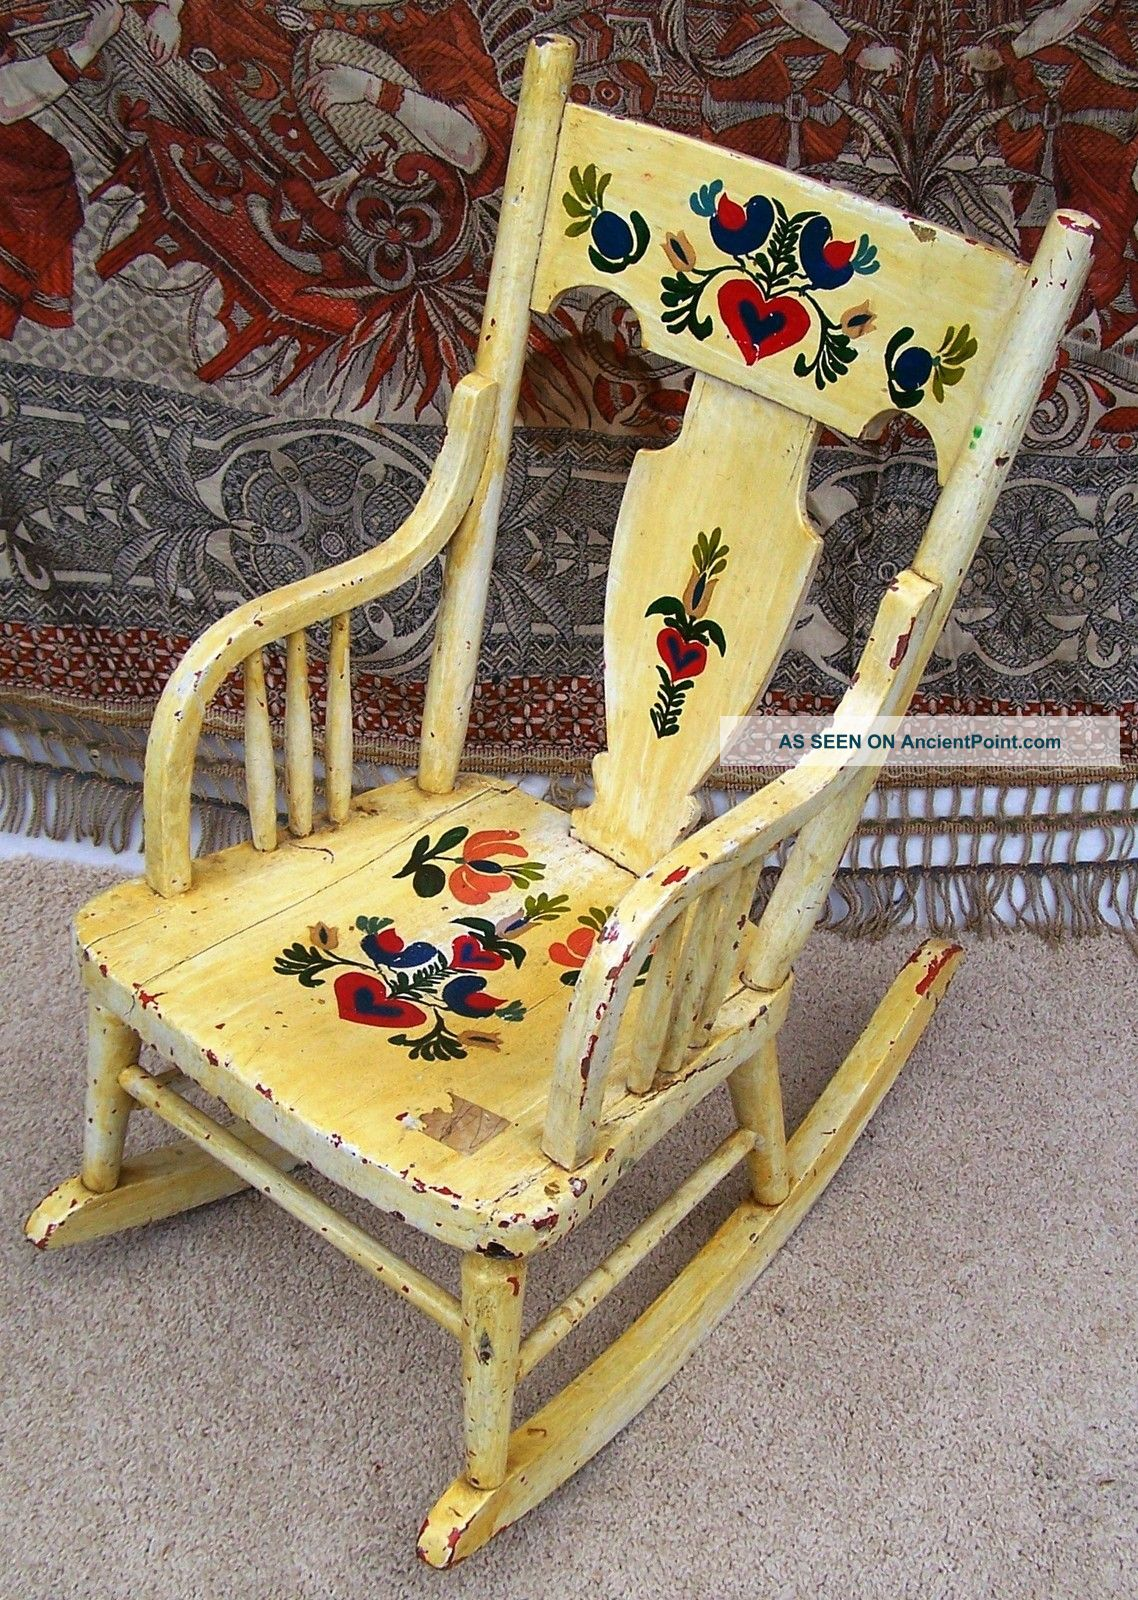 Rocking chairs on pinterest painted rocking chairs rocking chairs and childs rocking chair